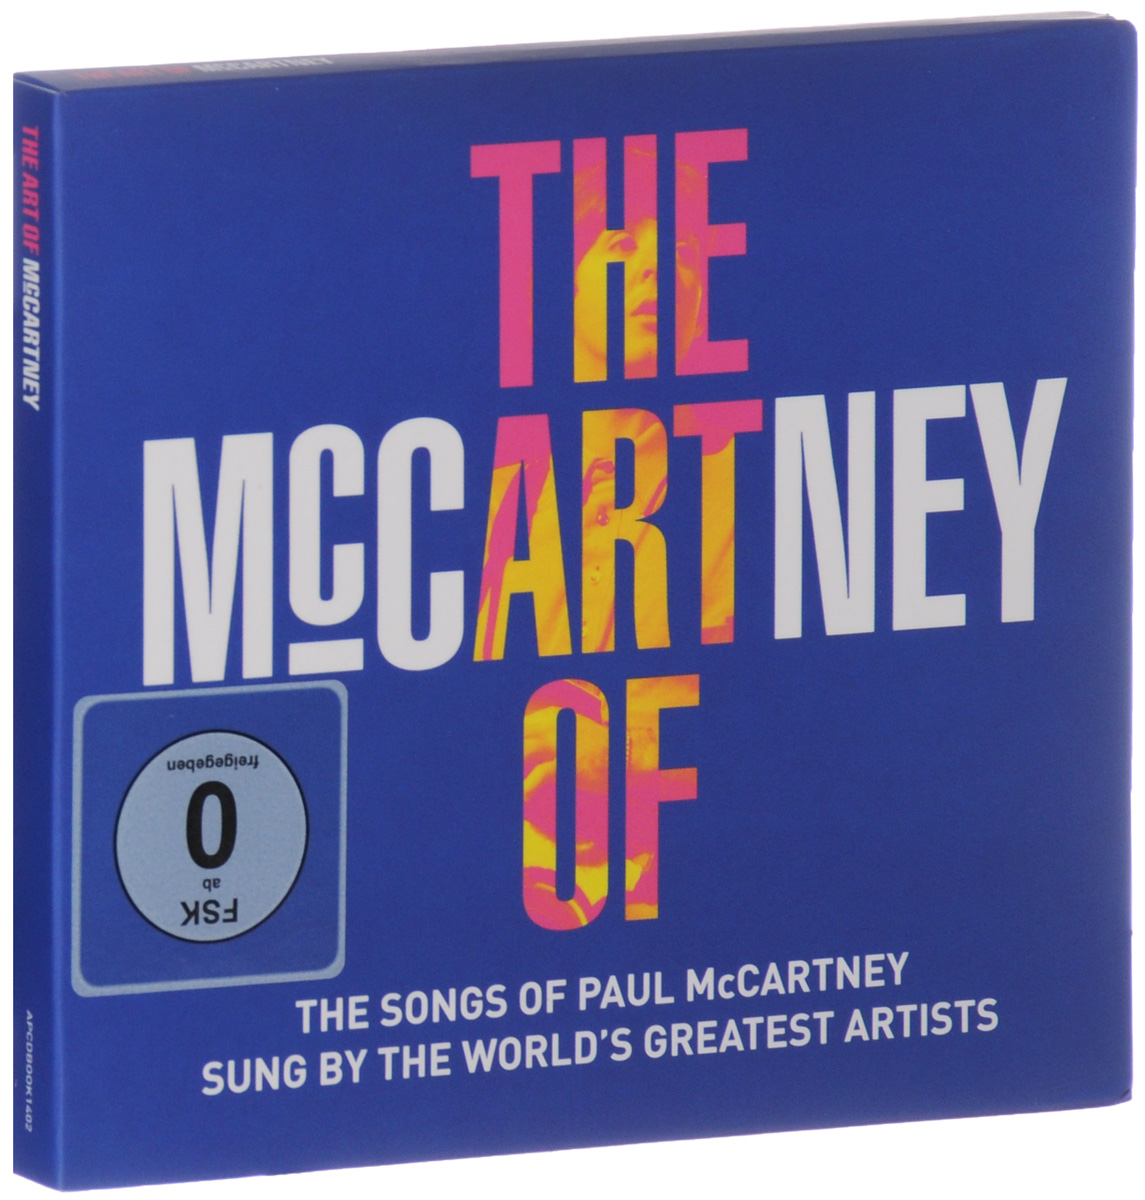 The Art Of McCartney (2 CD + DVD) 10 hd digital lcd screen car headrest monitor dvd cd player ir fm with remote controller remote mount bracket car player new